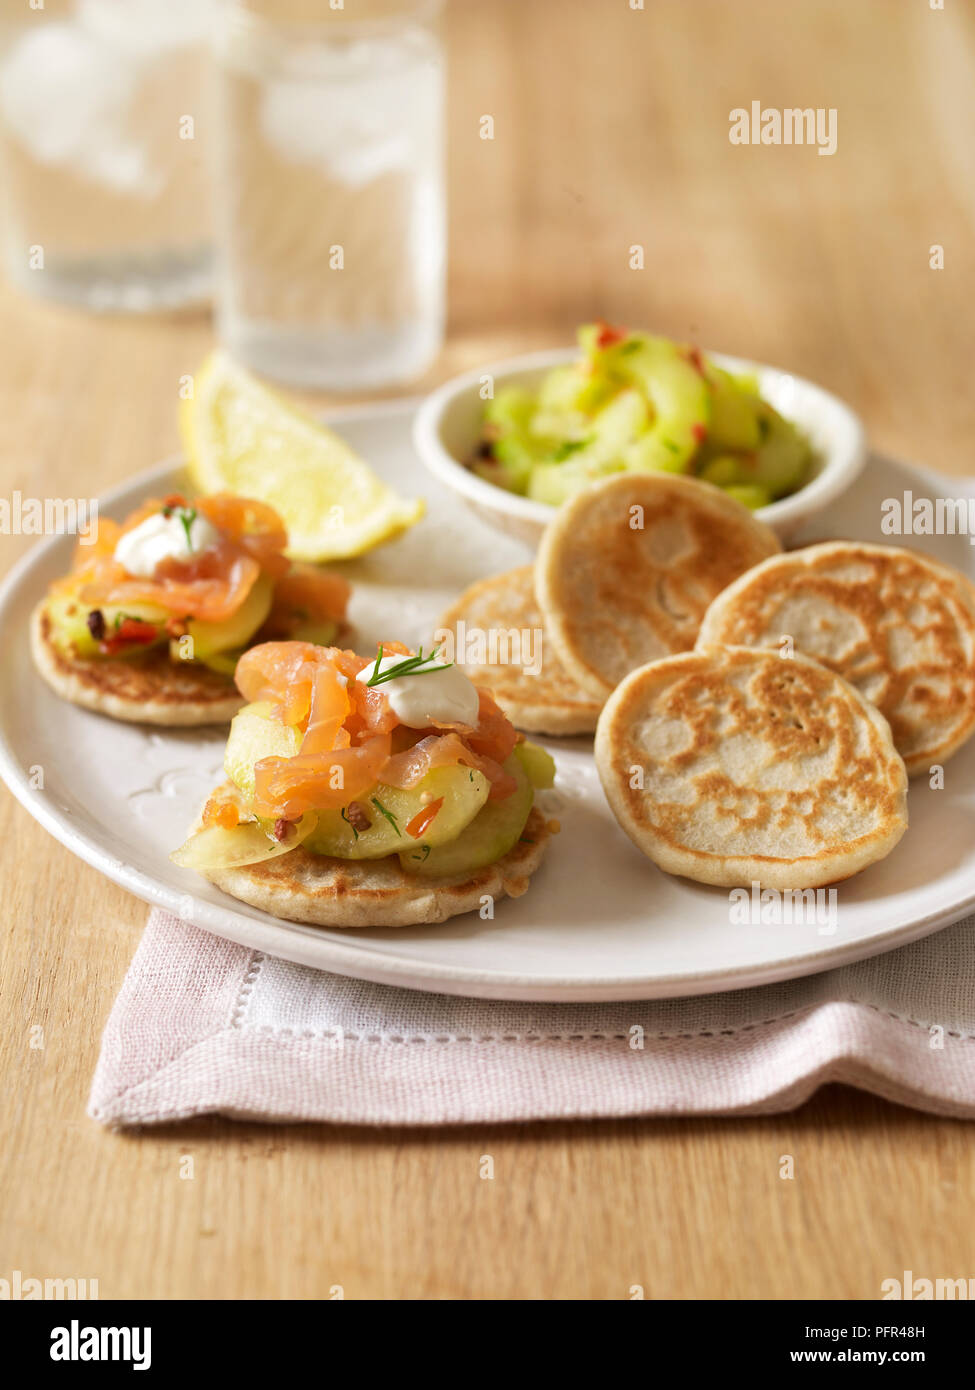 Gluten-free blinis (Russian pancakes) with smoked trout, cucumber and sour cream - Stock Image